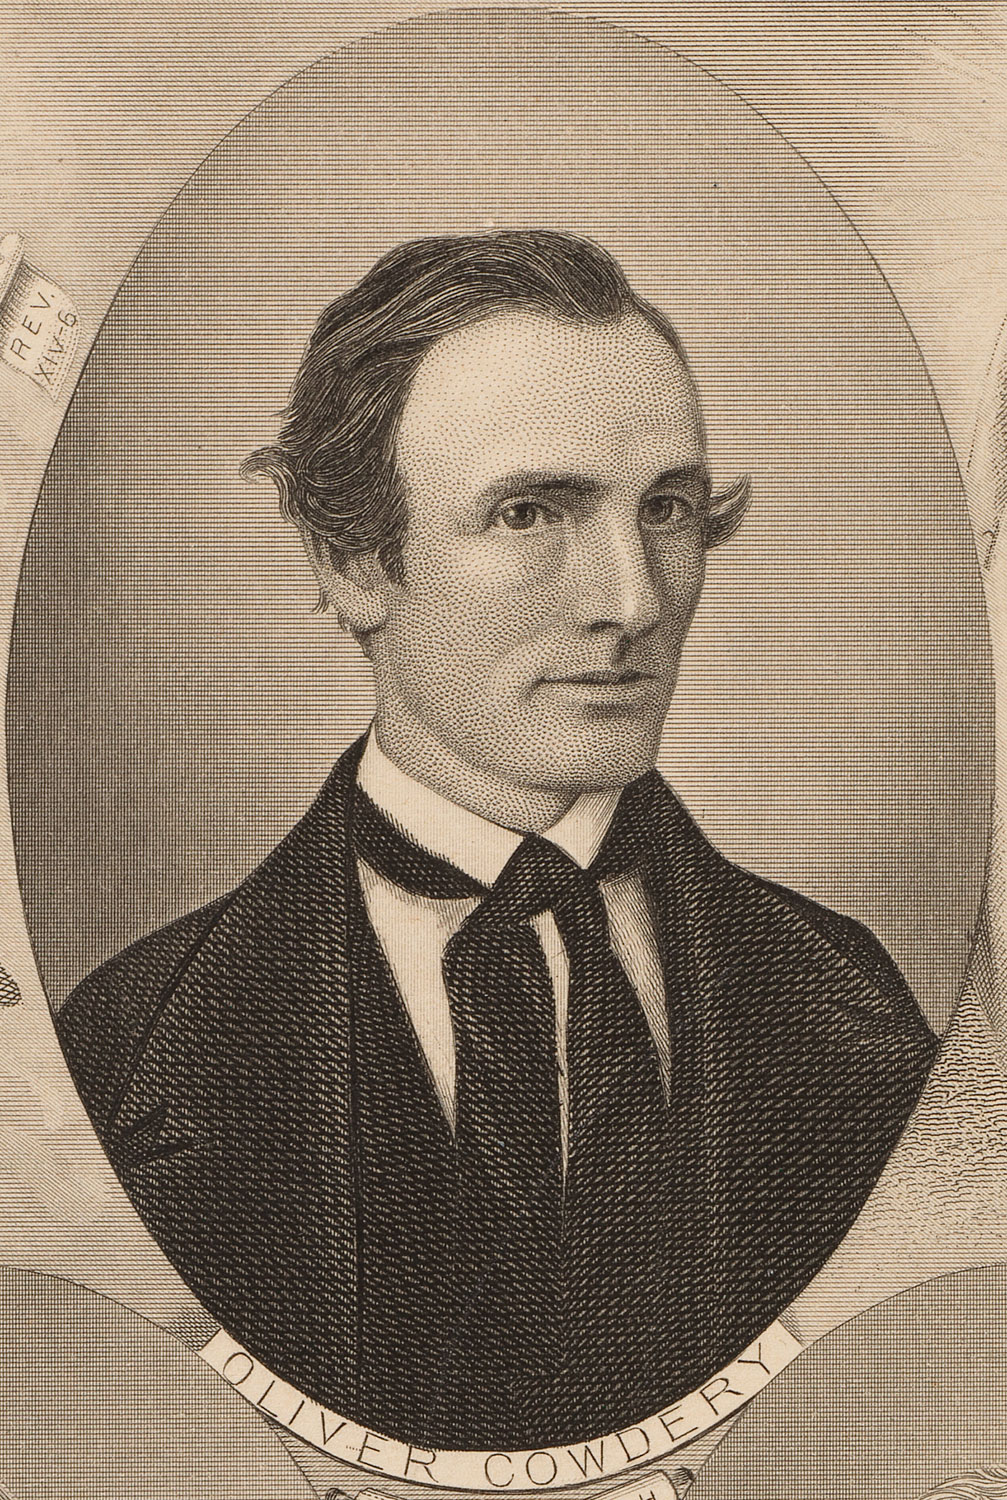 Oliver Cowdery opposed polygamy